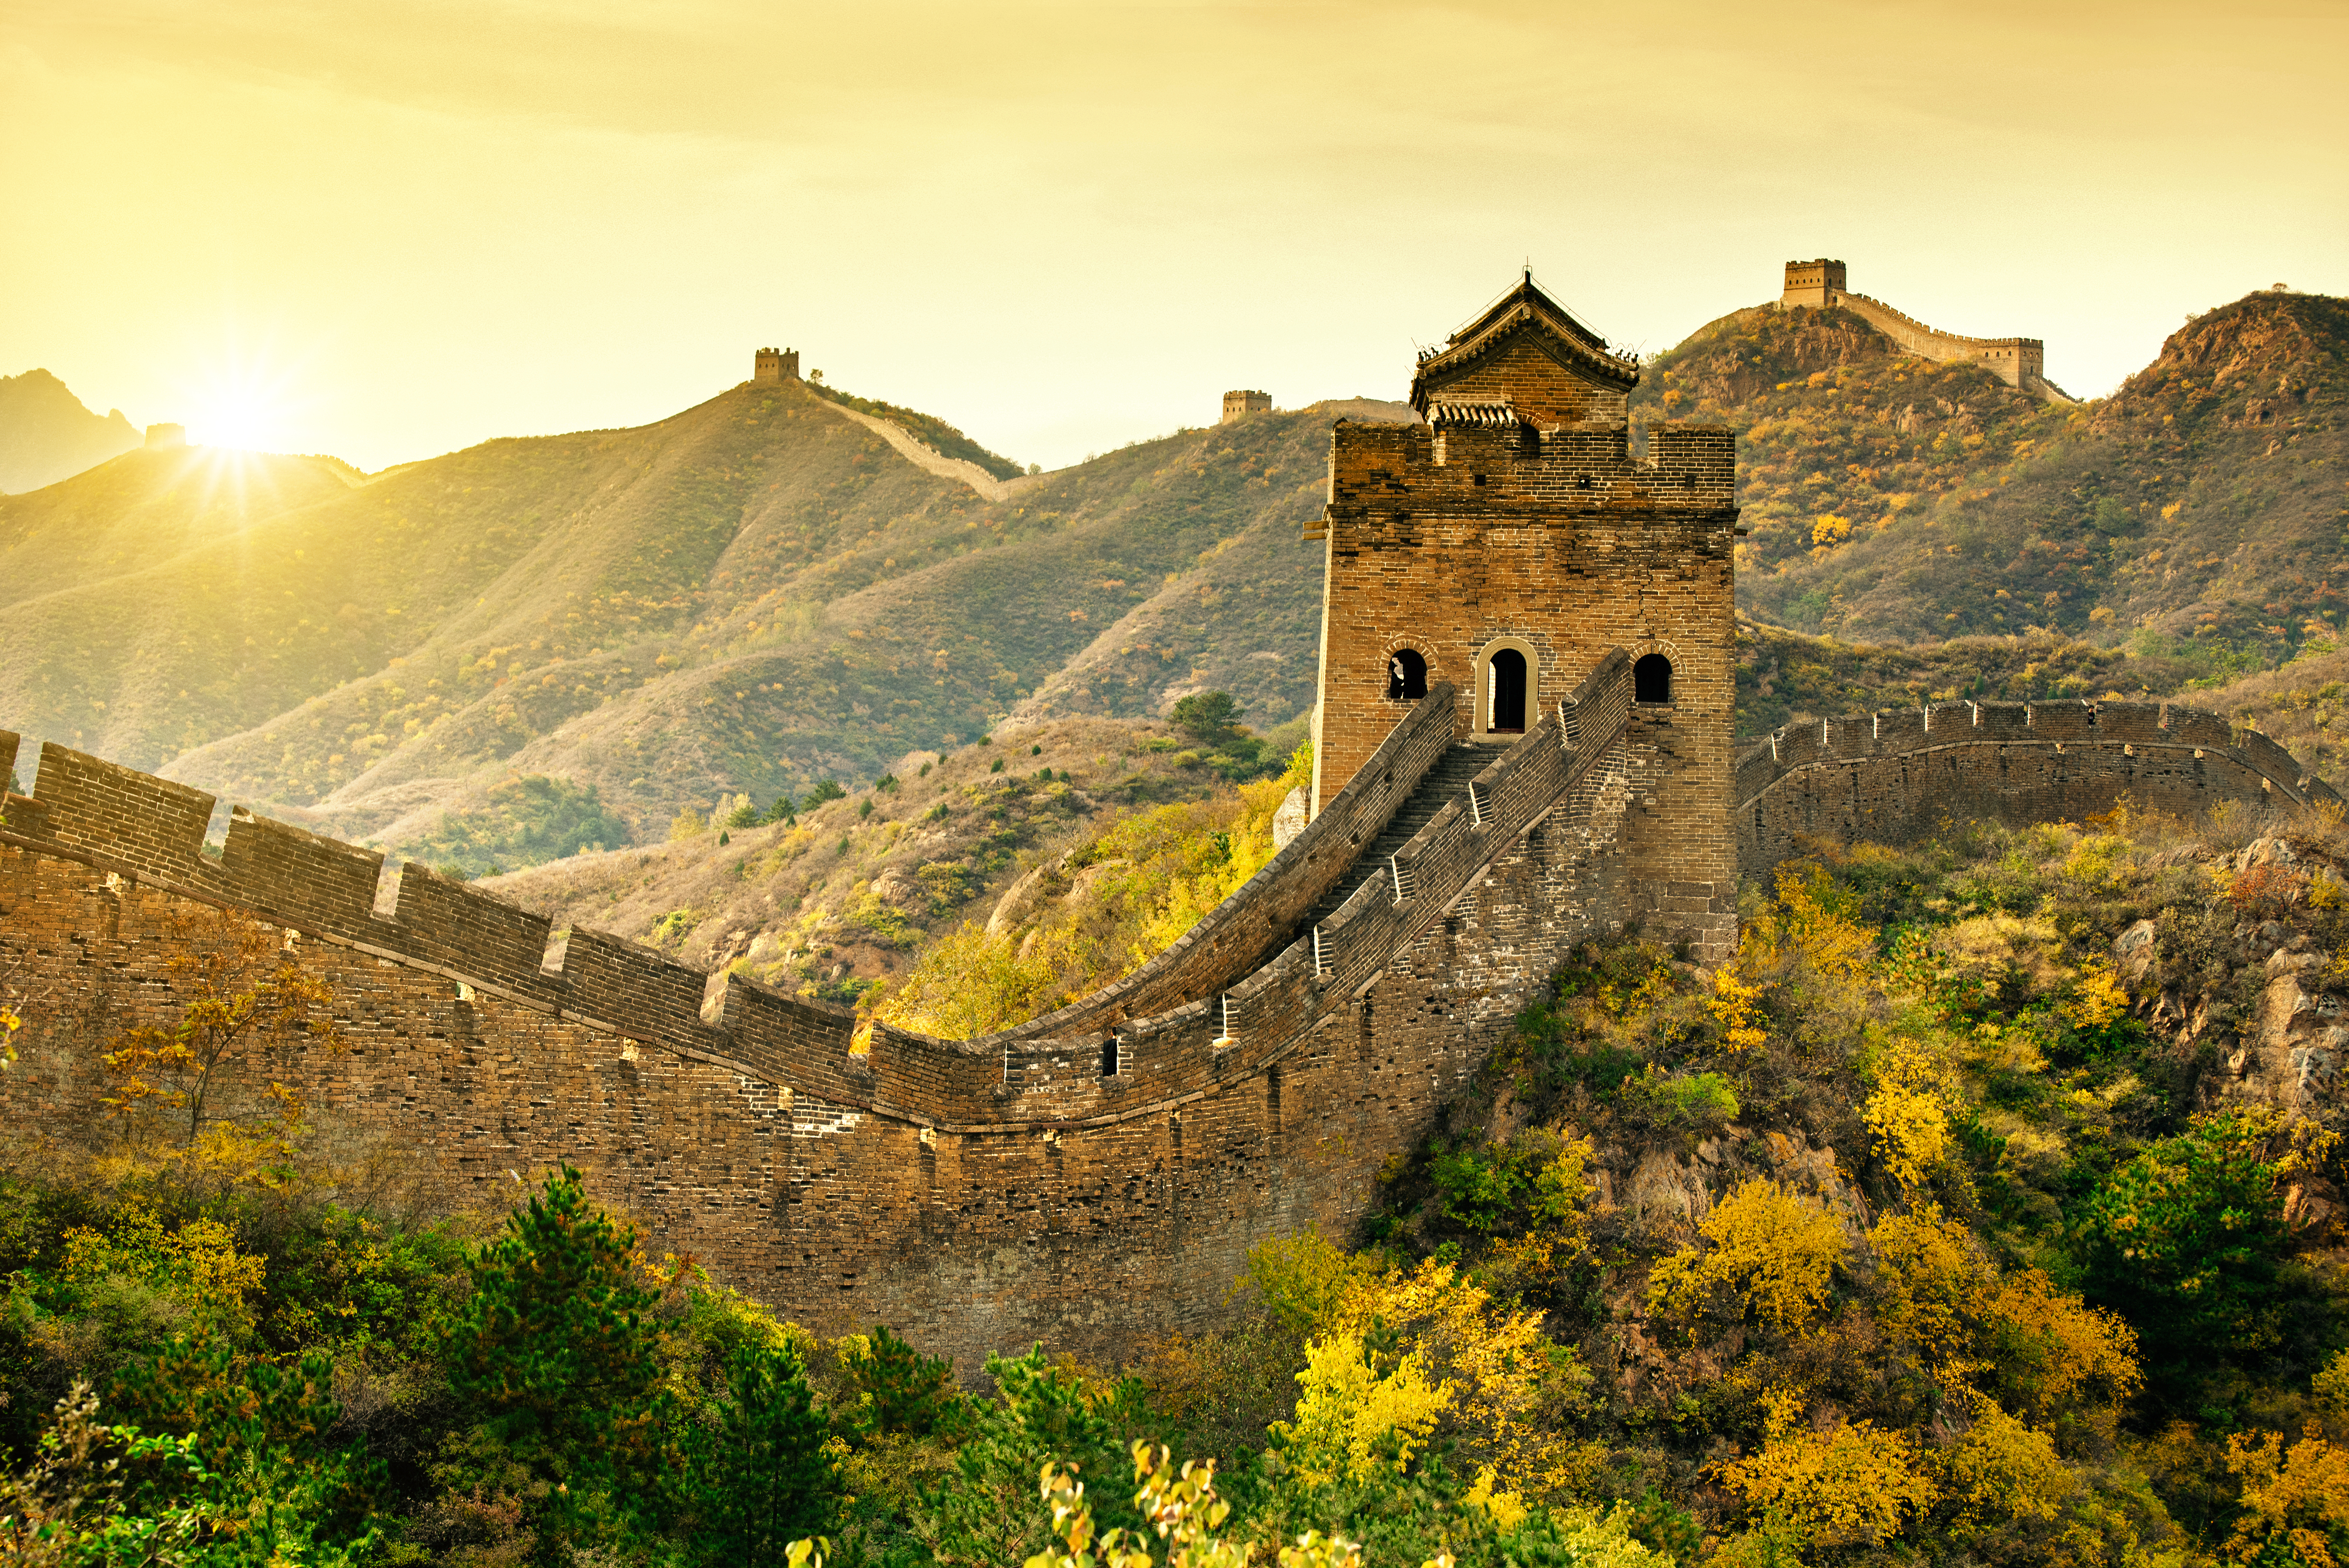 Summer Program - Chinese | Middlebury Interactive Language Academy: Study Abroad and Immersion Programs